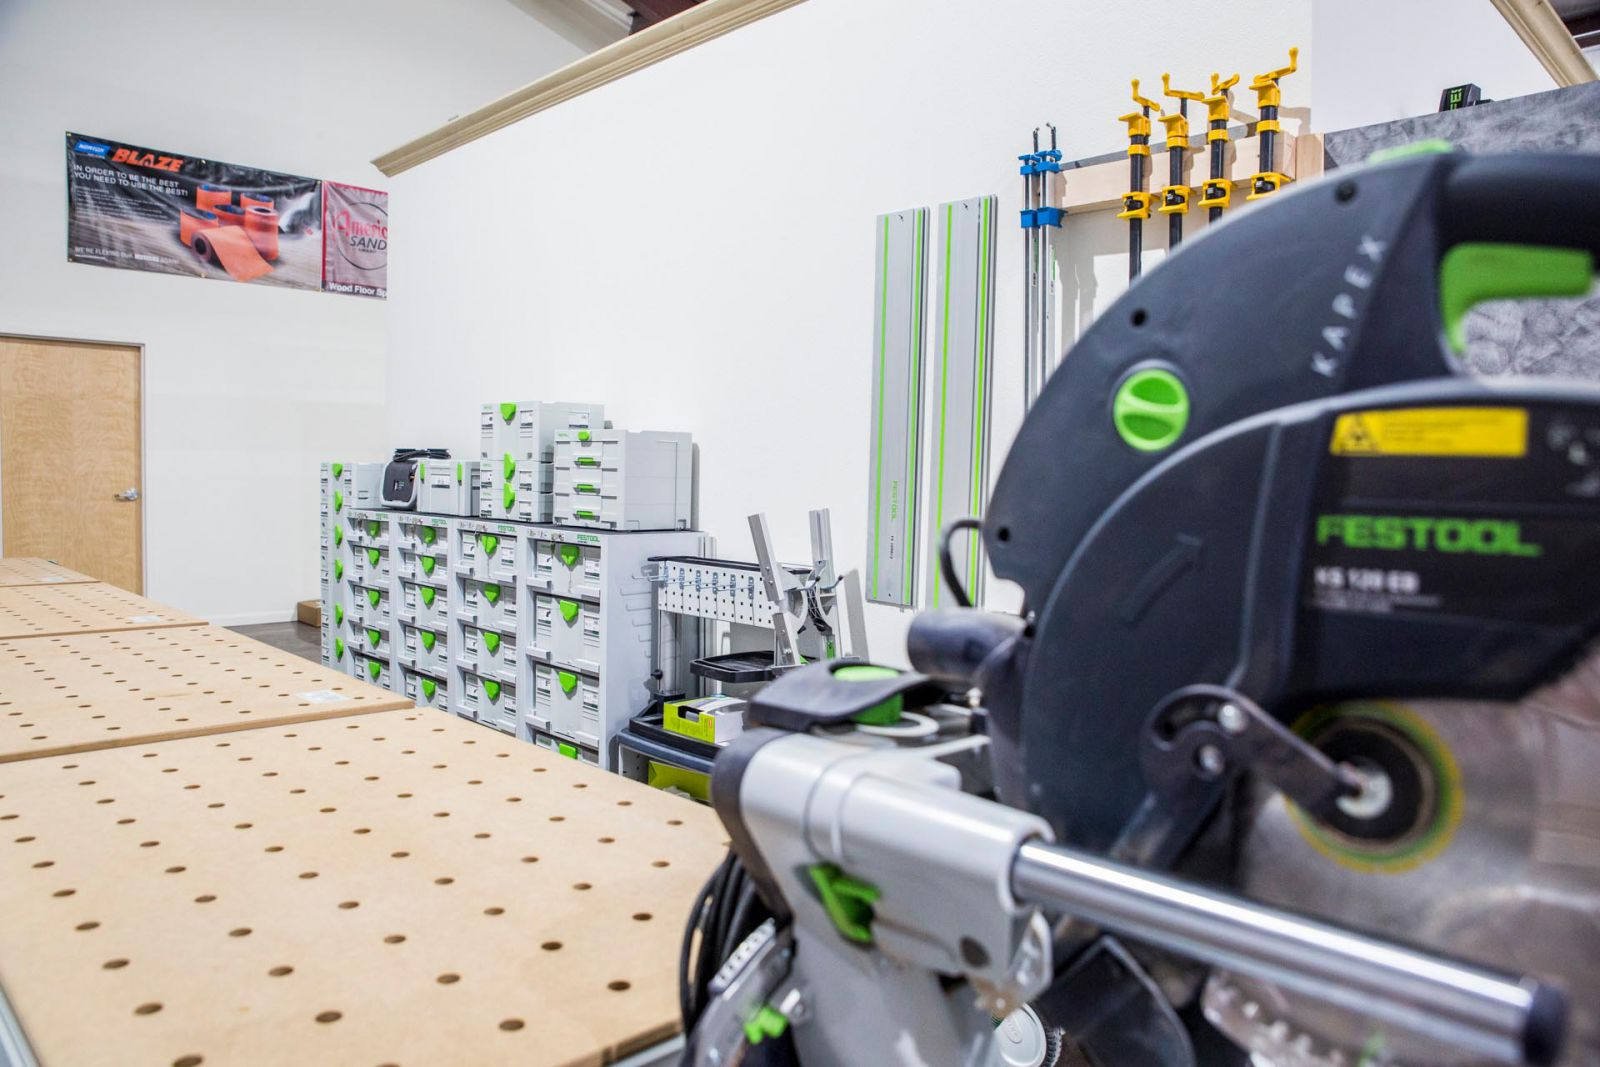 Festool tools in the Rubio Monocoat training facility in Austin, TX